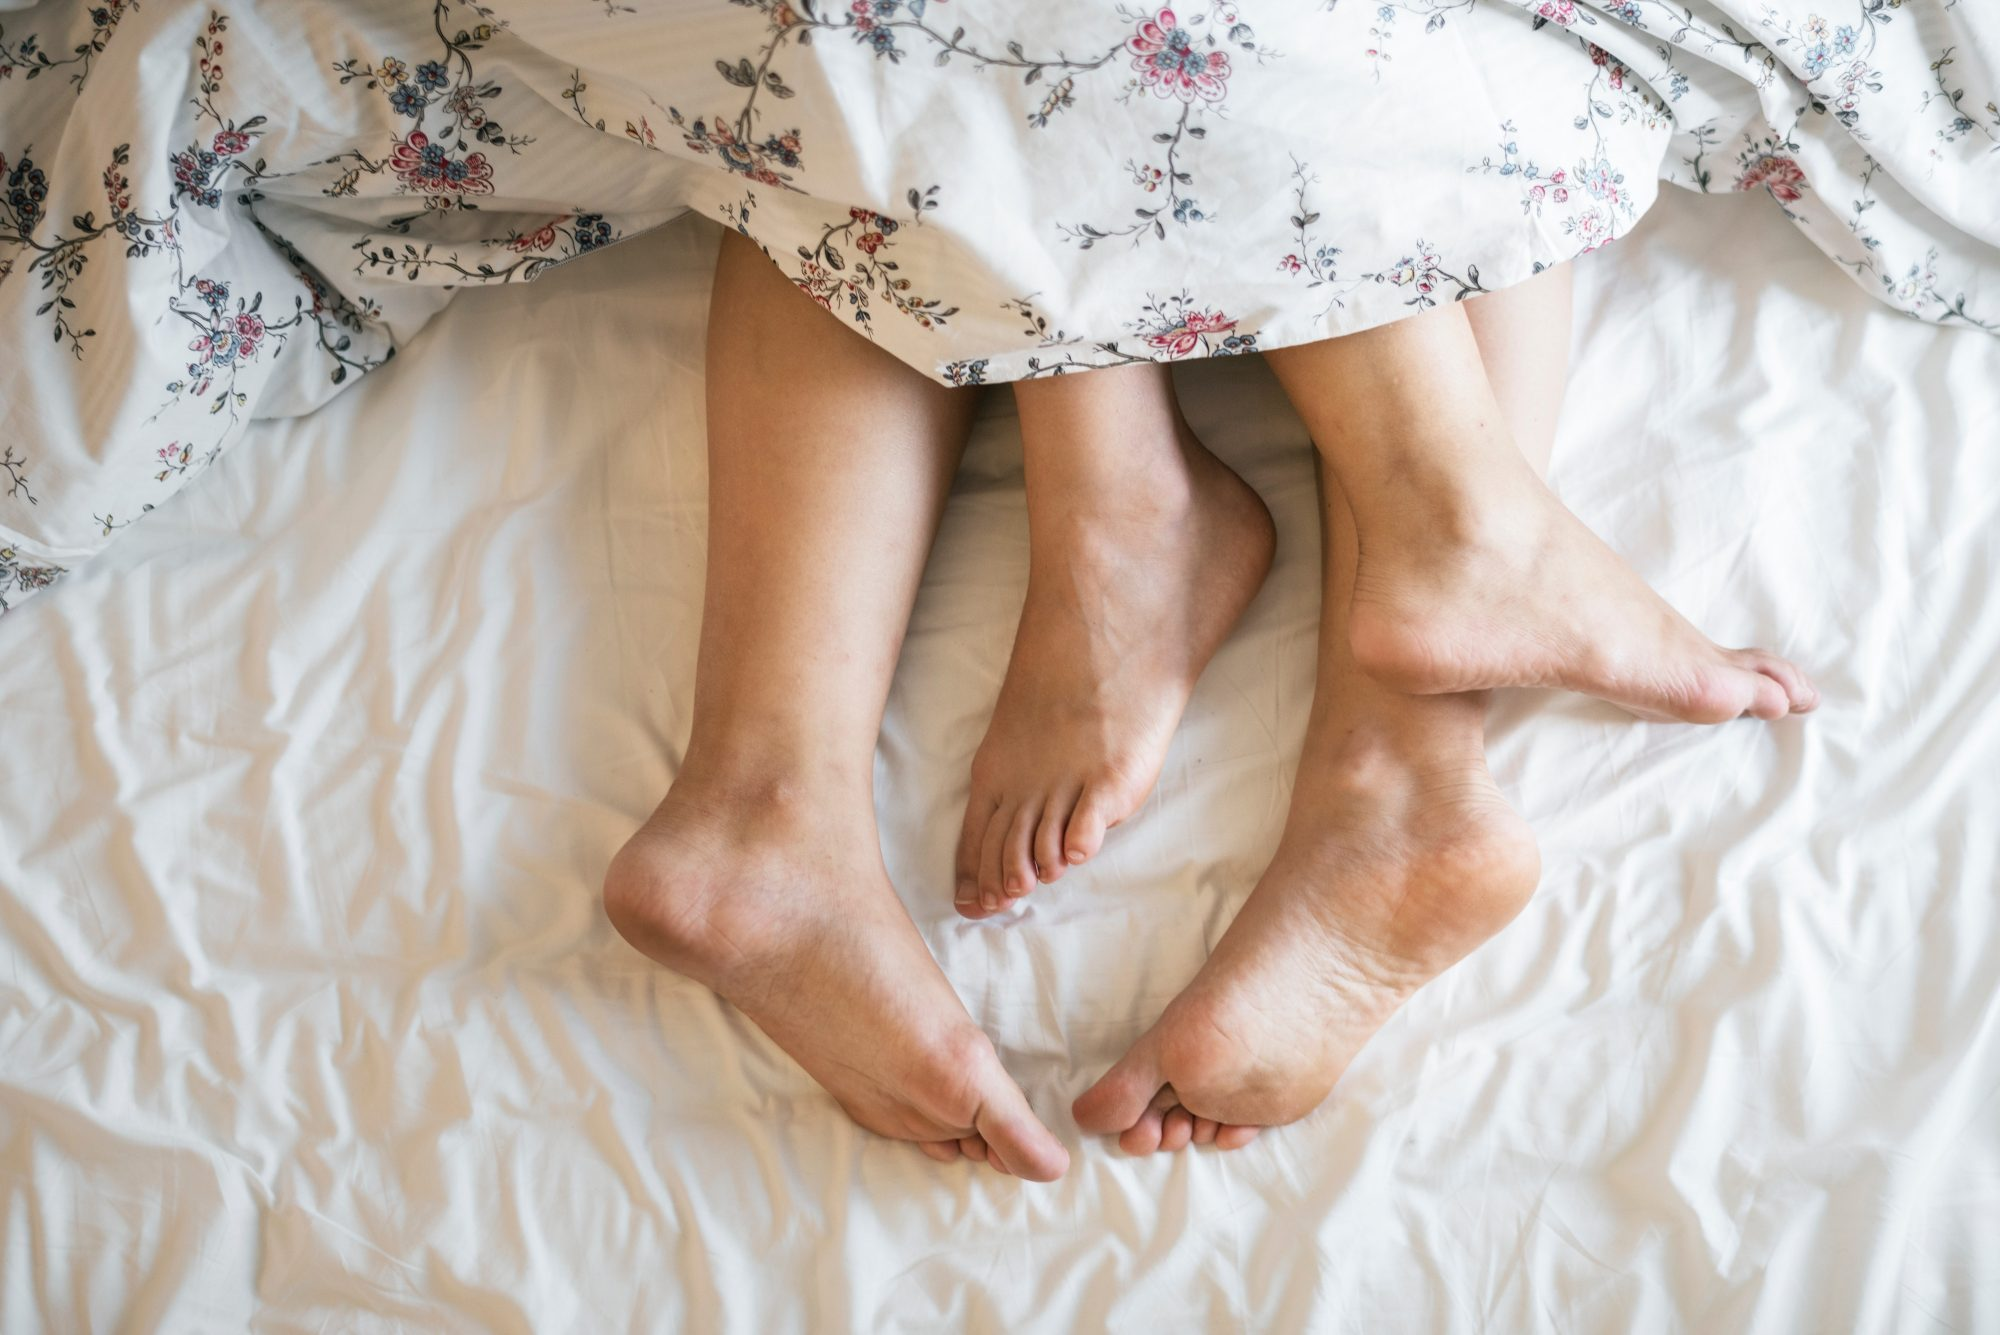 The 3 Things I Wish I'd Known Before Fertility Treatment